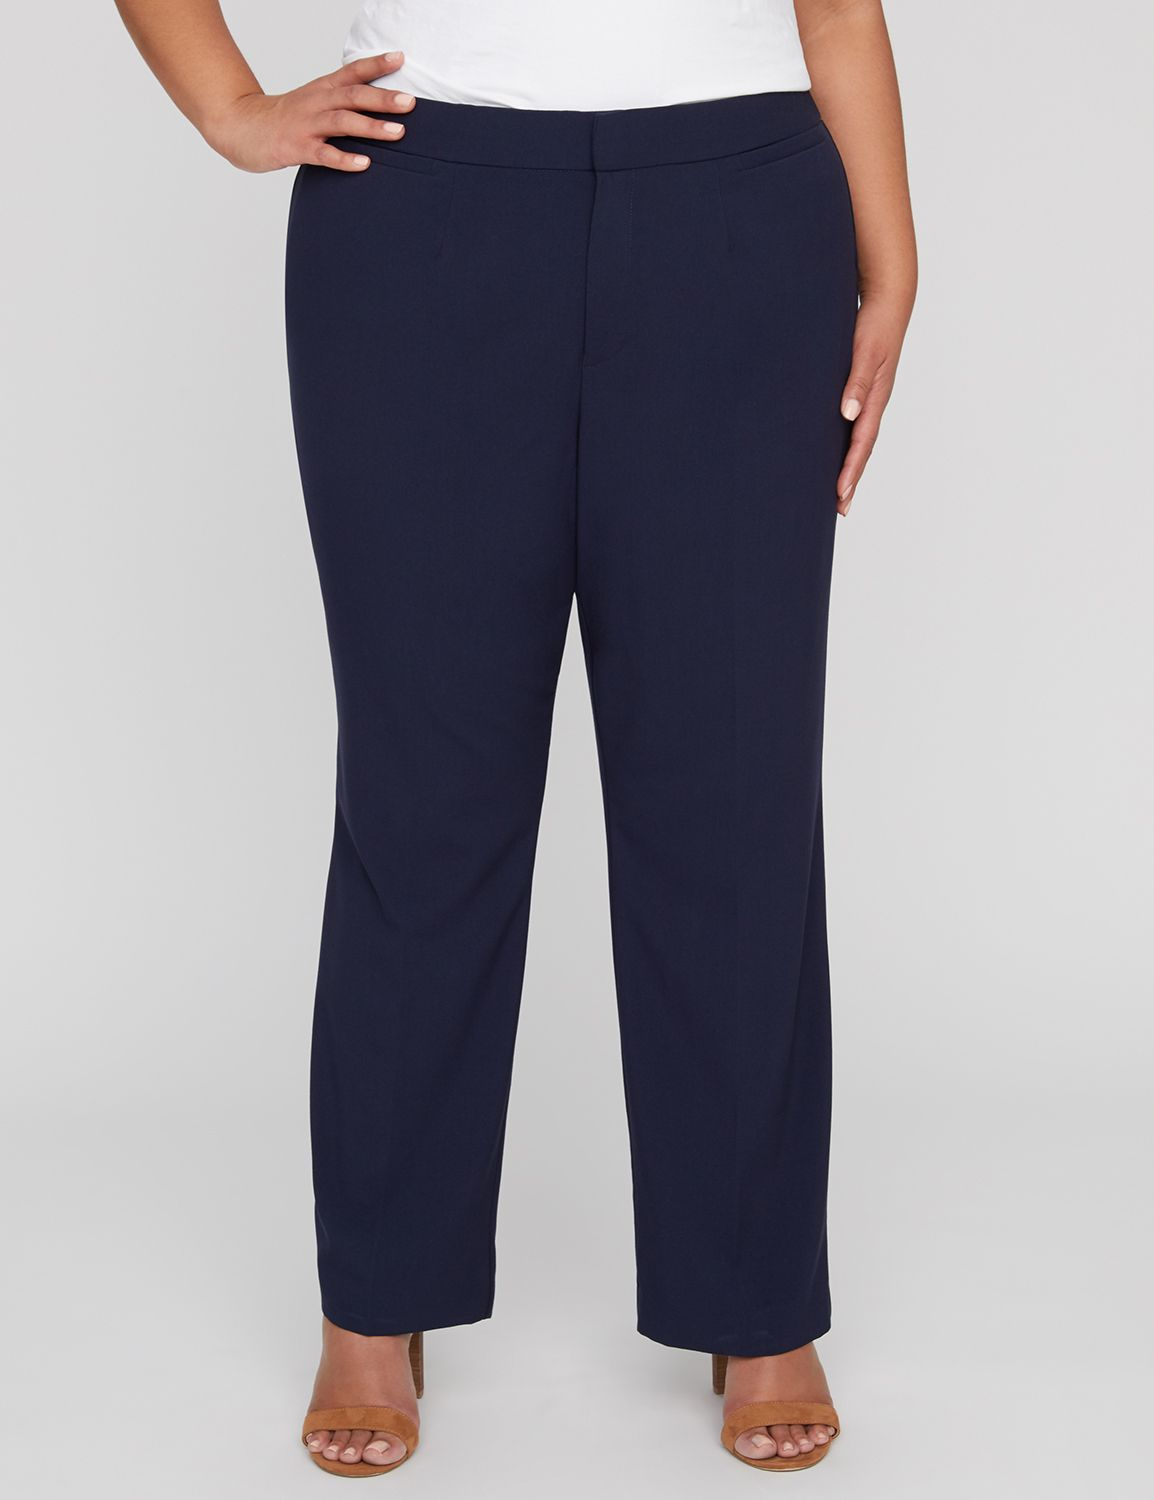 Right Fit Pant (Curvy) Right Fit Pant (Curvy) MP-300043654